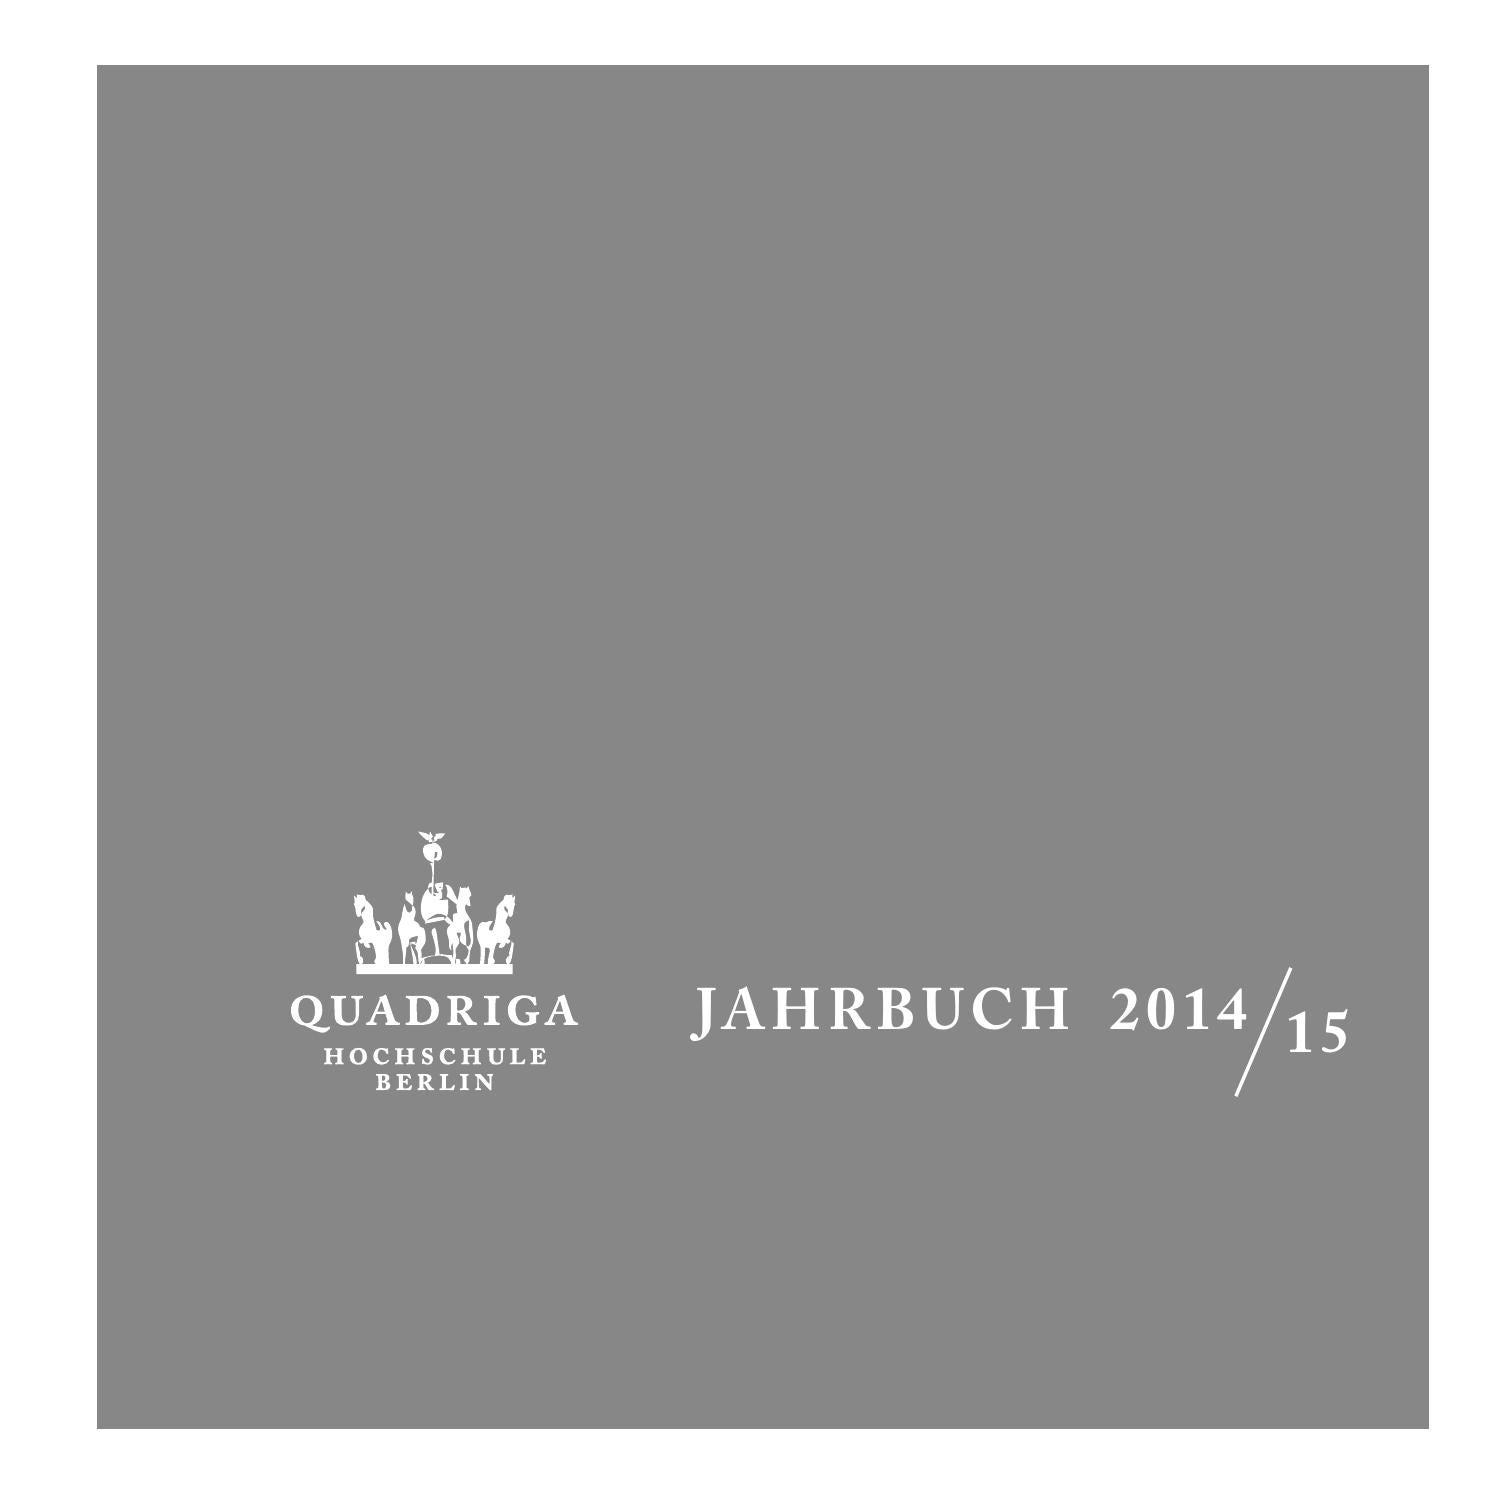 Quadriga Jahrbuch 2014/2015 by Quadriga Media Berlin GmbH - issuu